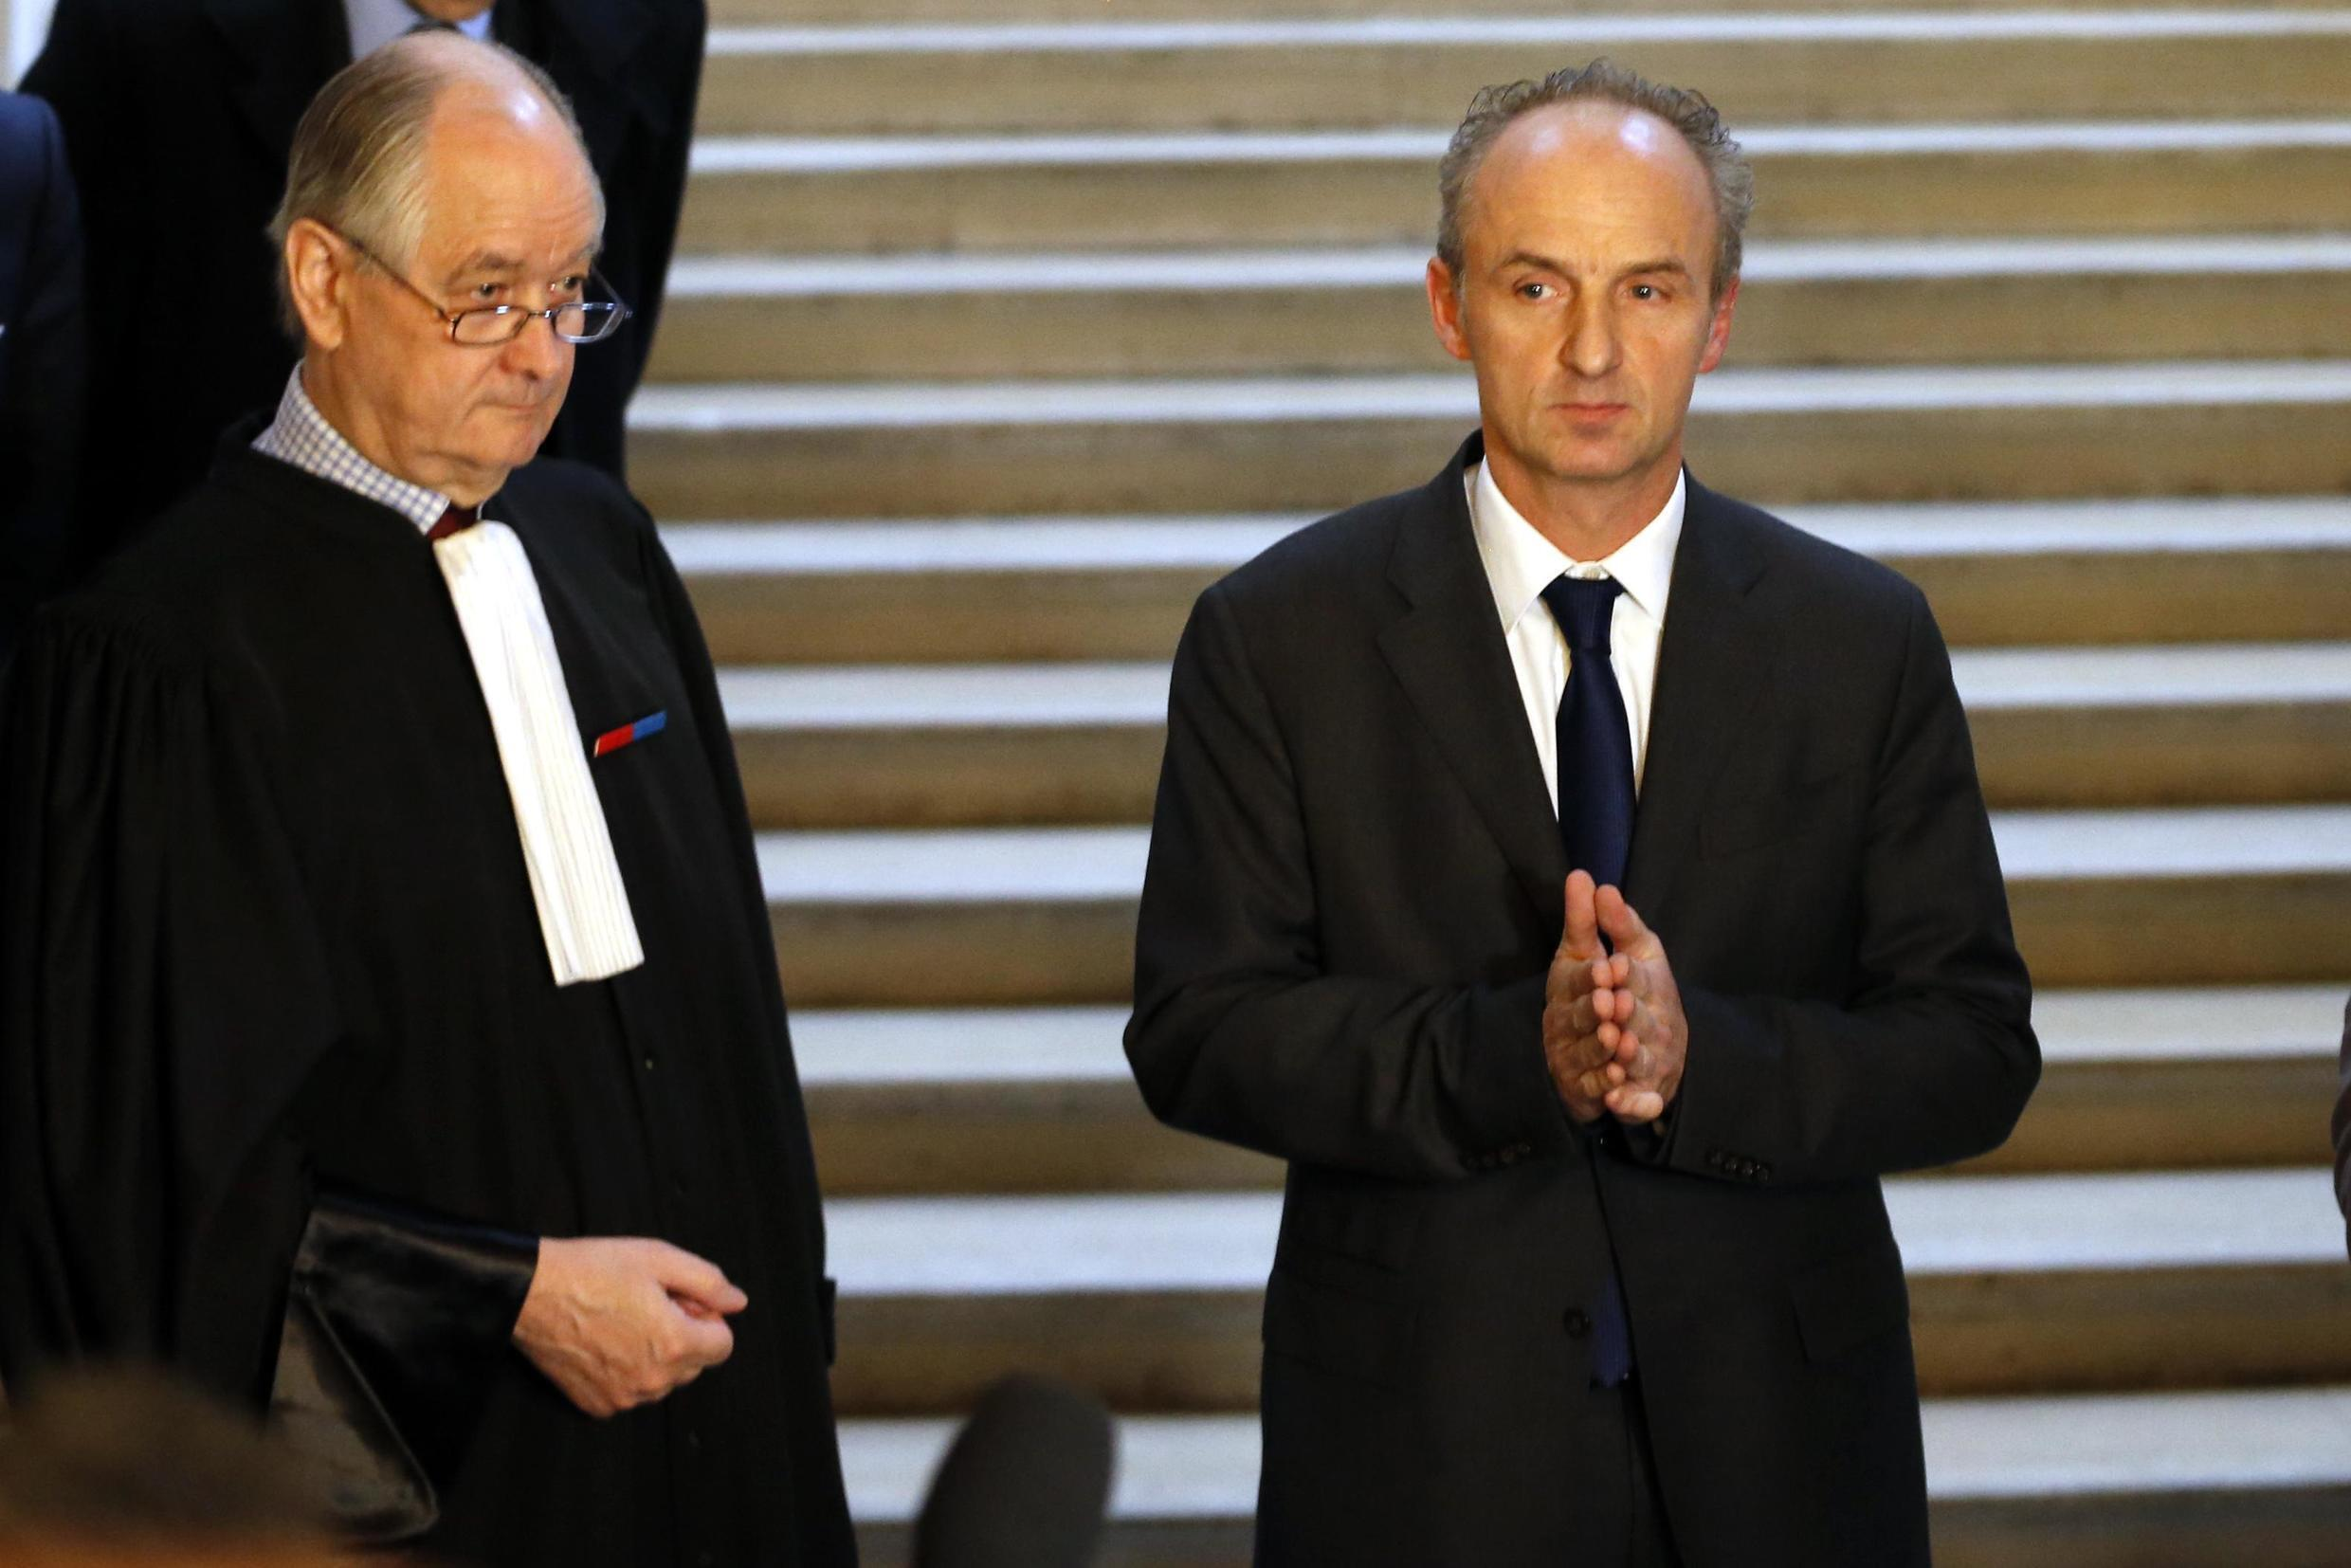 Doctor Eric Kariger (R), Chief of Palliative Medicine at the Reims CHU hospital, speaks to journalists about the case of Vincent Lambert, Paris, 13 February